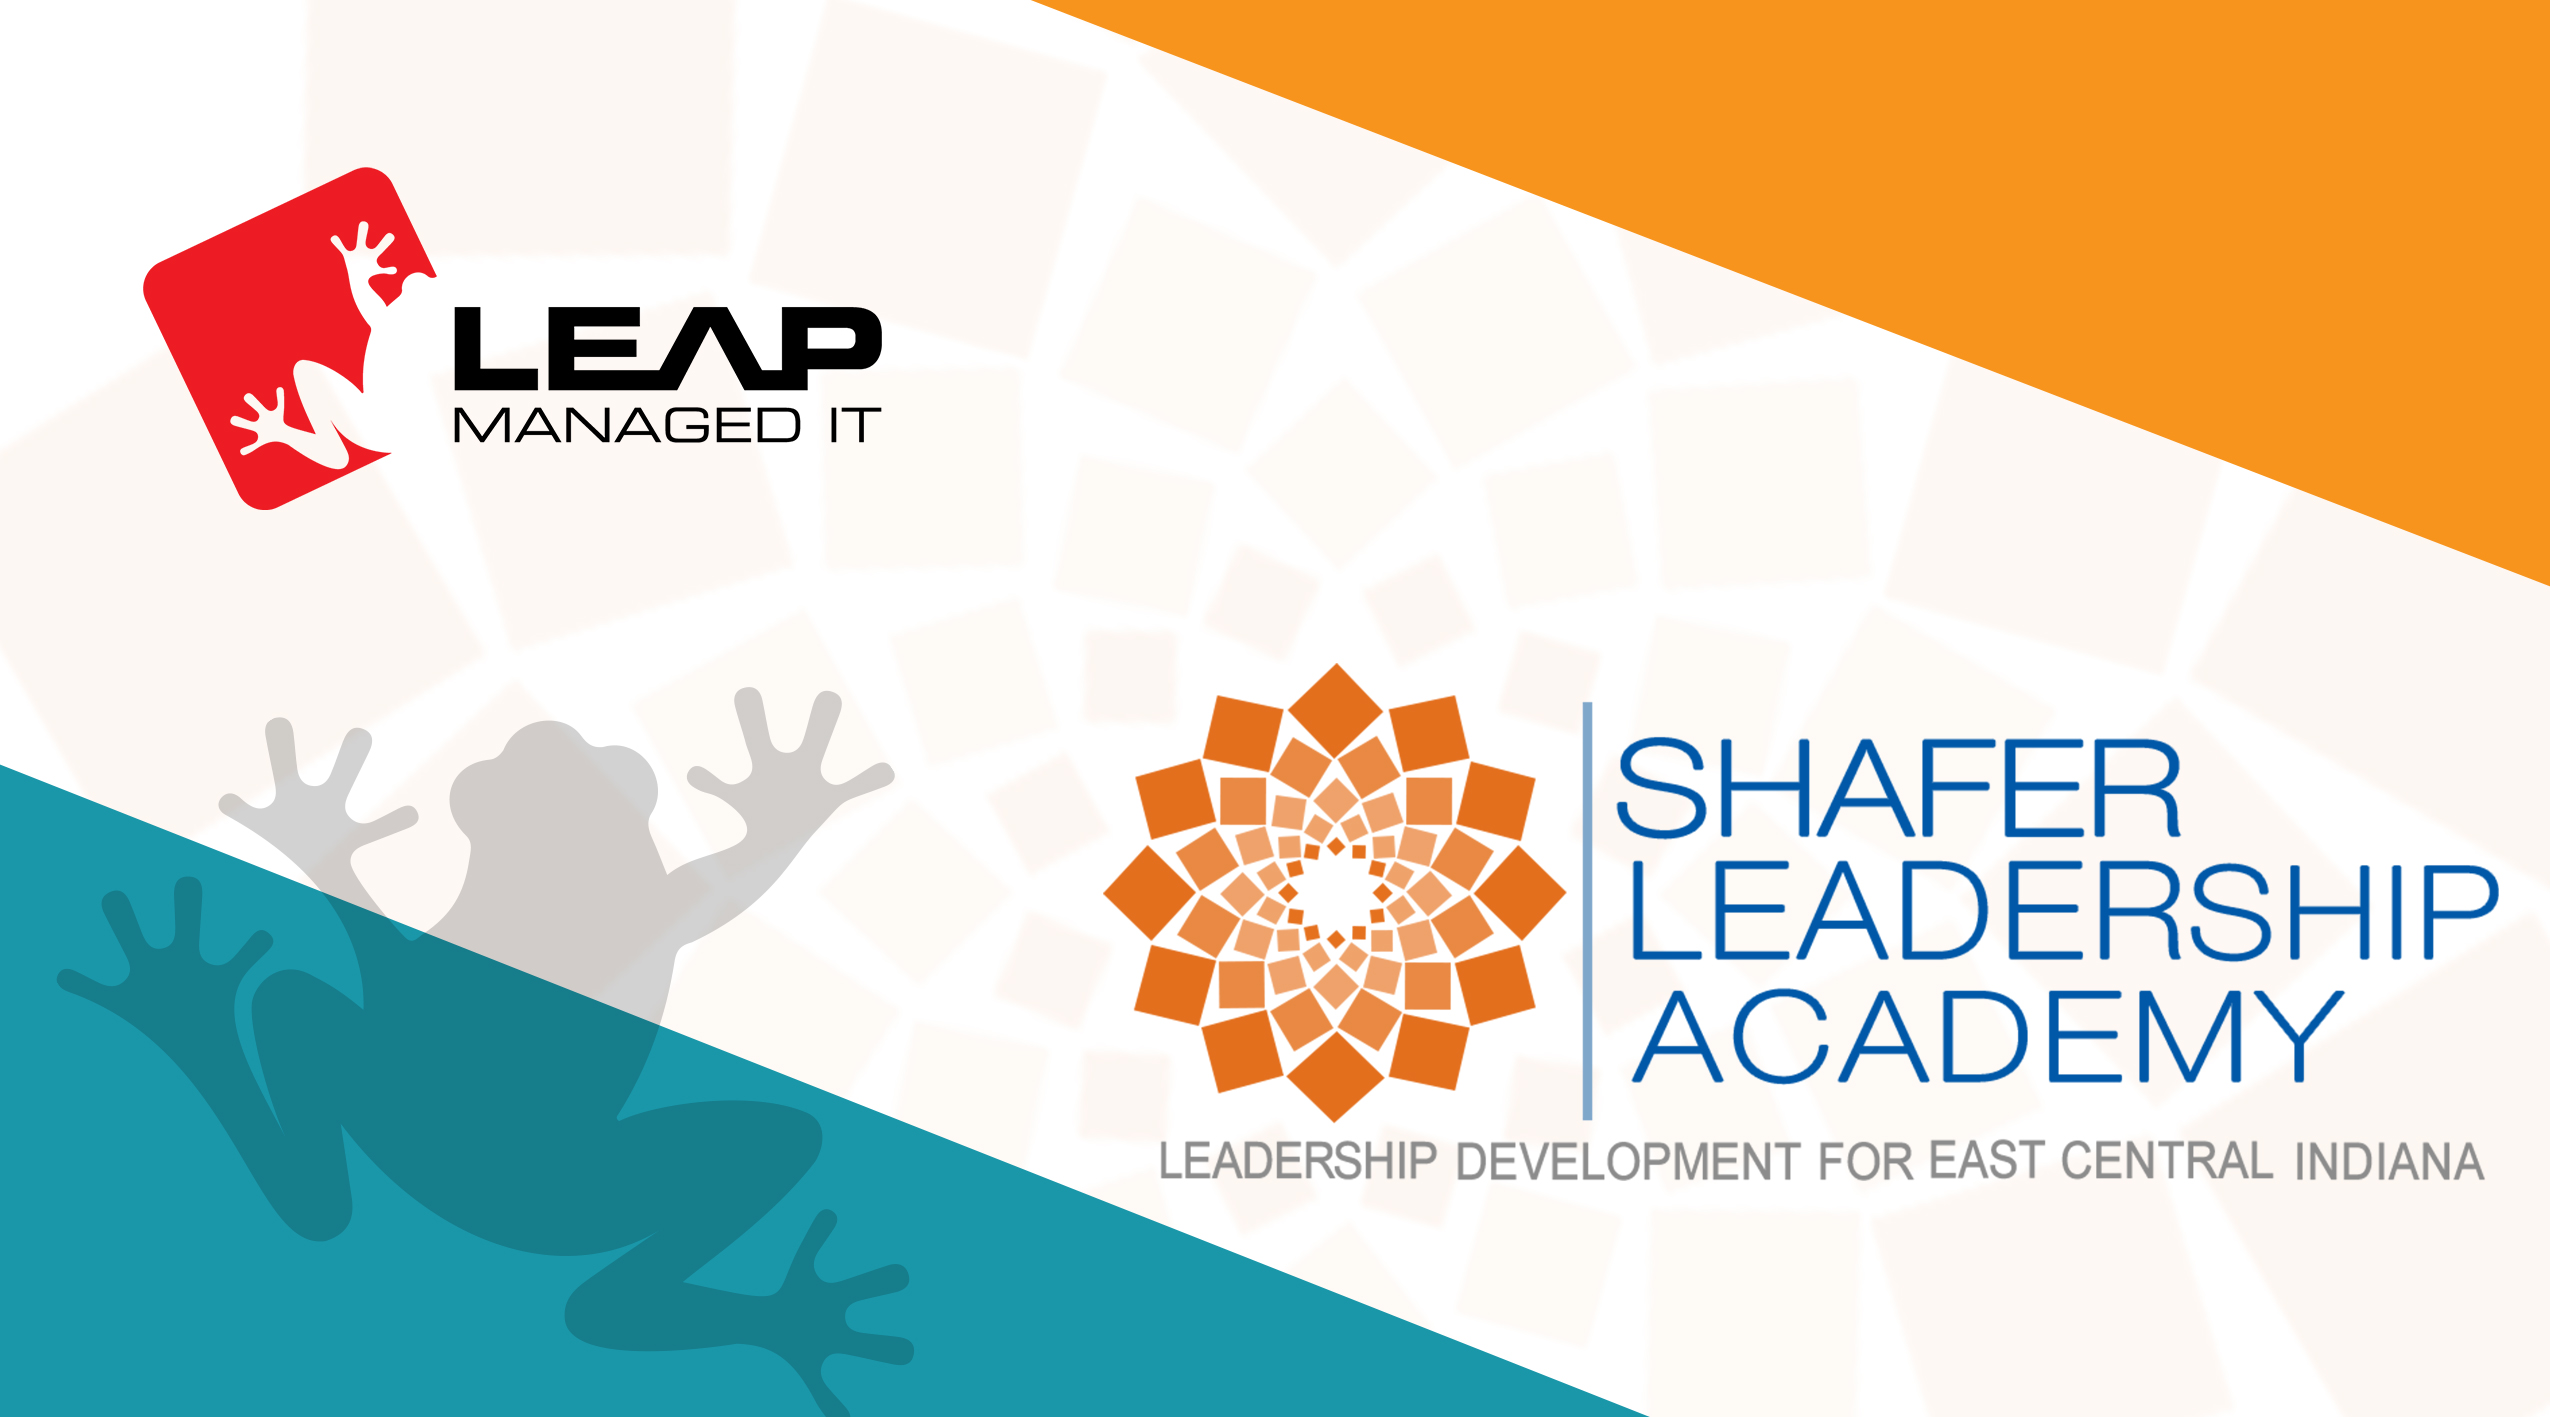 Partner in Focus: Shafer Leadership Academy